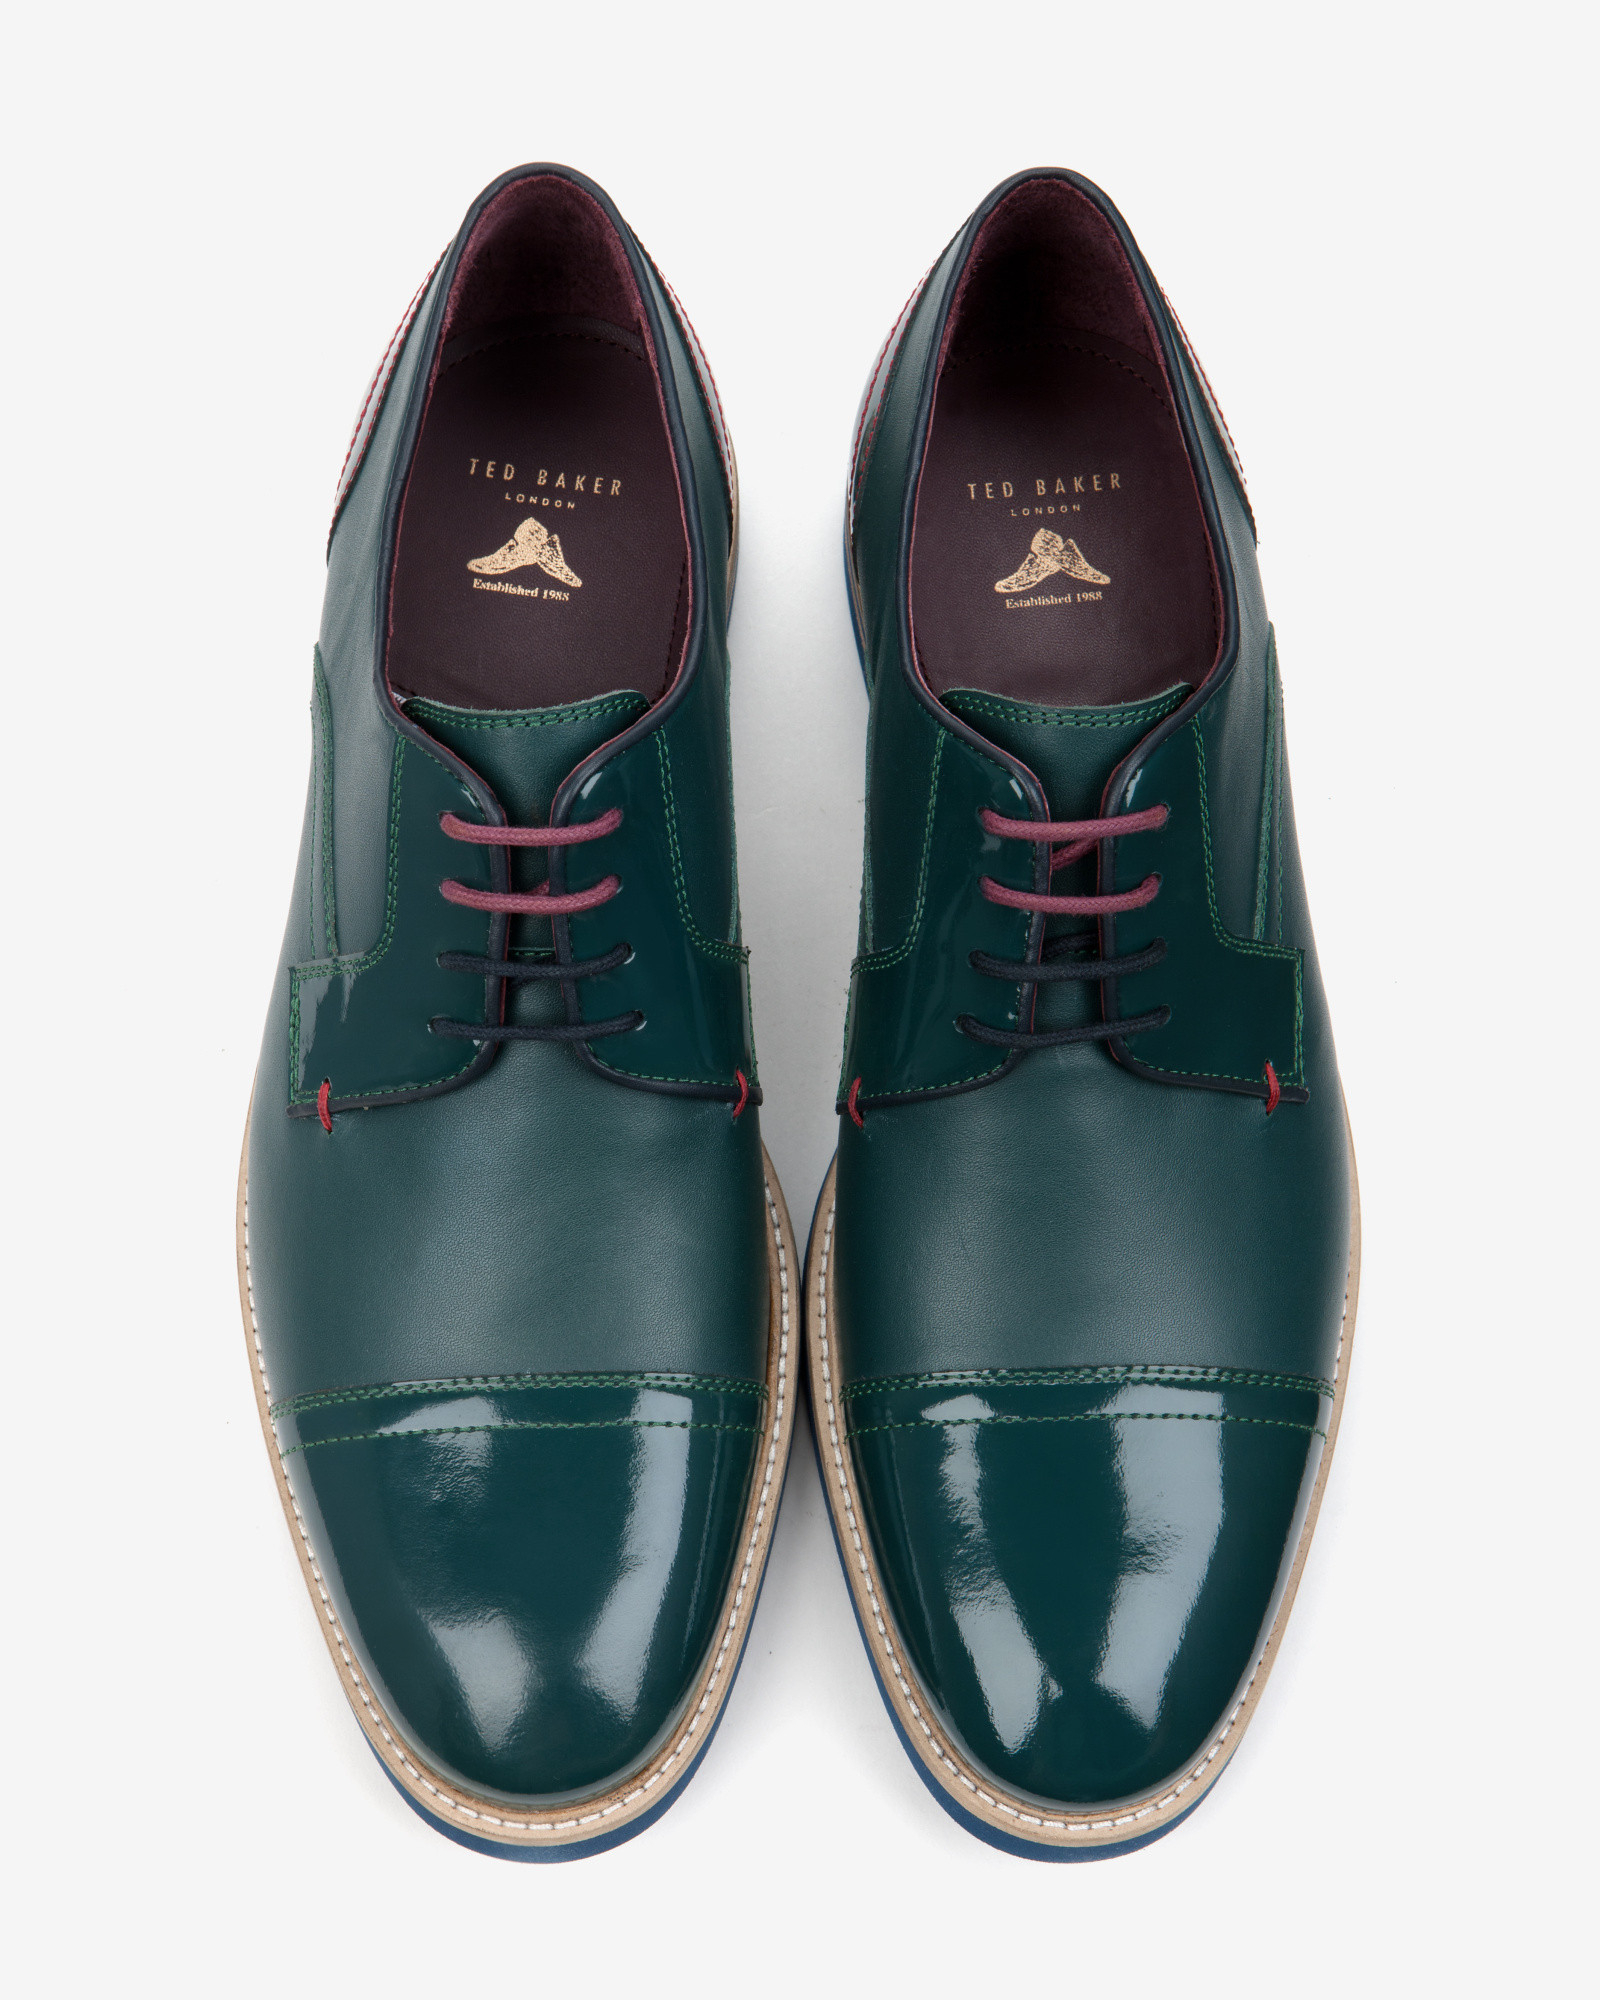 0216a129e Ted Baker Textured Derby Shoes in Green for Men - Lyst